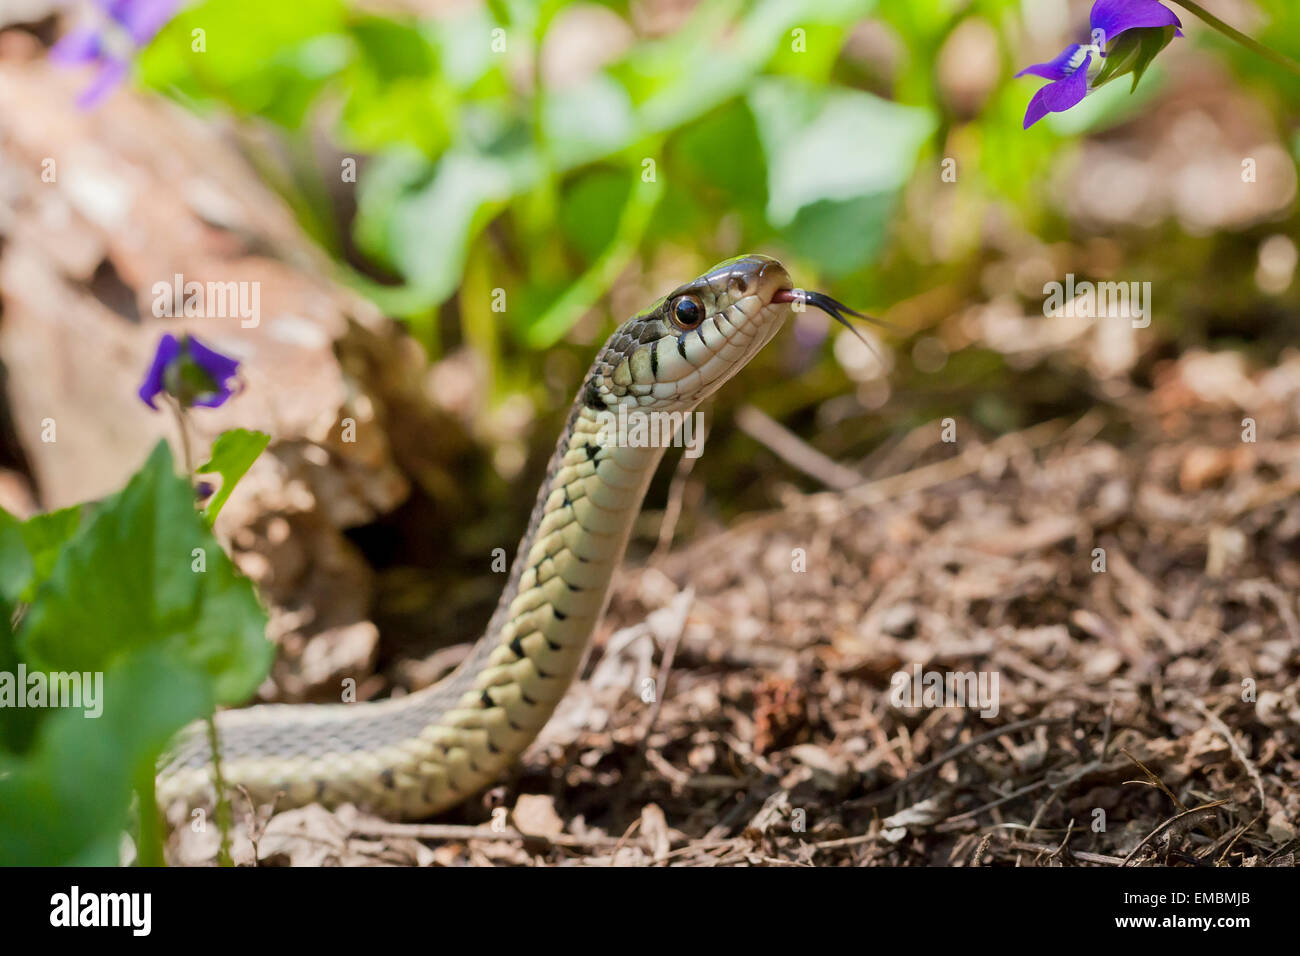 Couleuvre rayée (Thamnophis sirtalis) - Virginia USA Banque D'Images